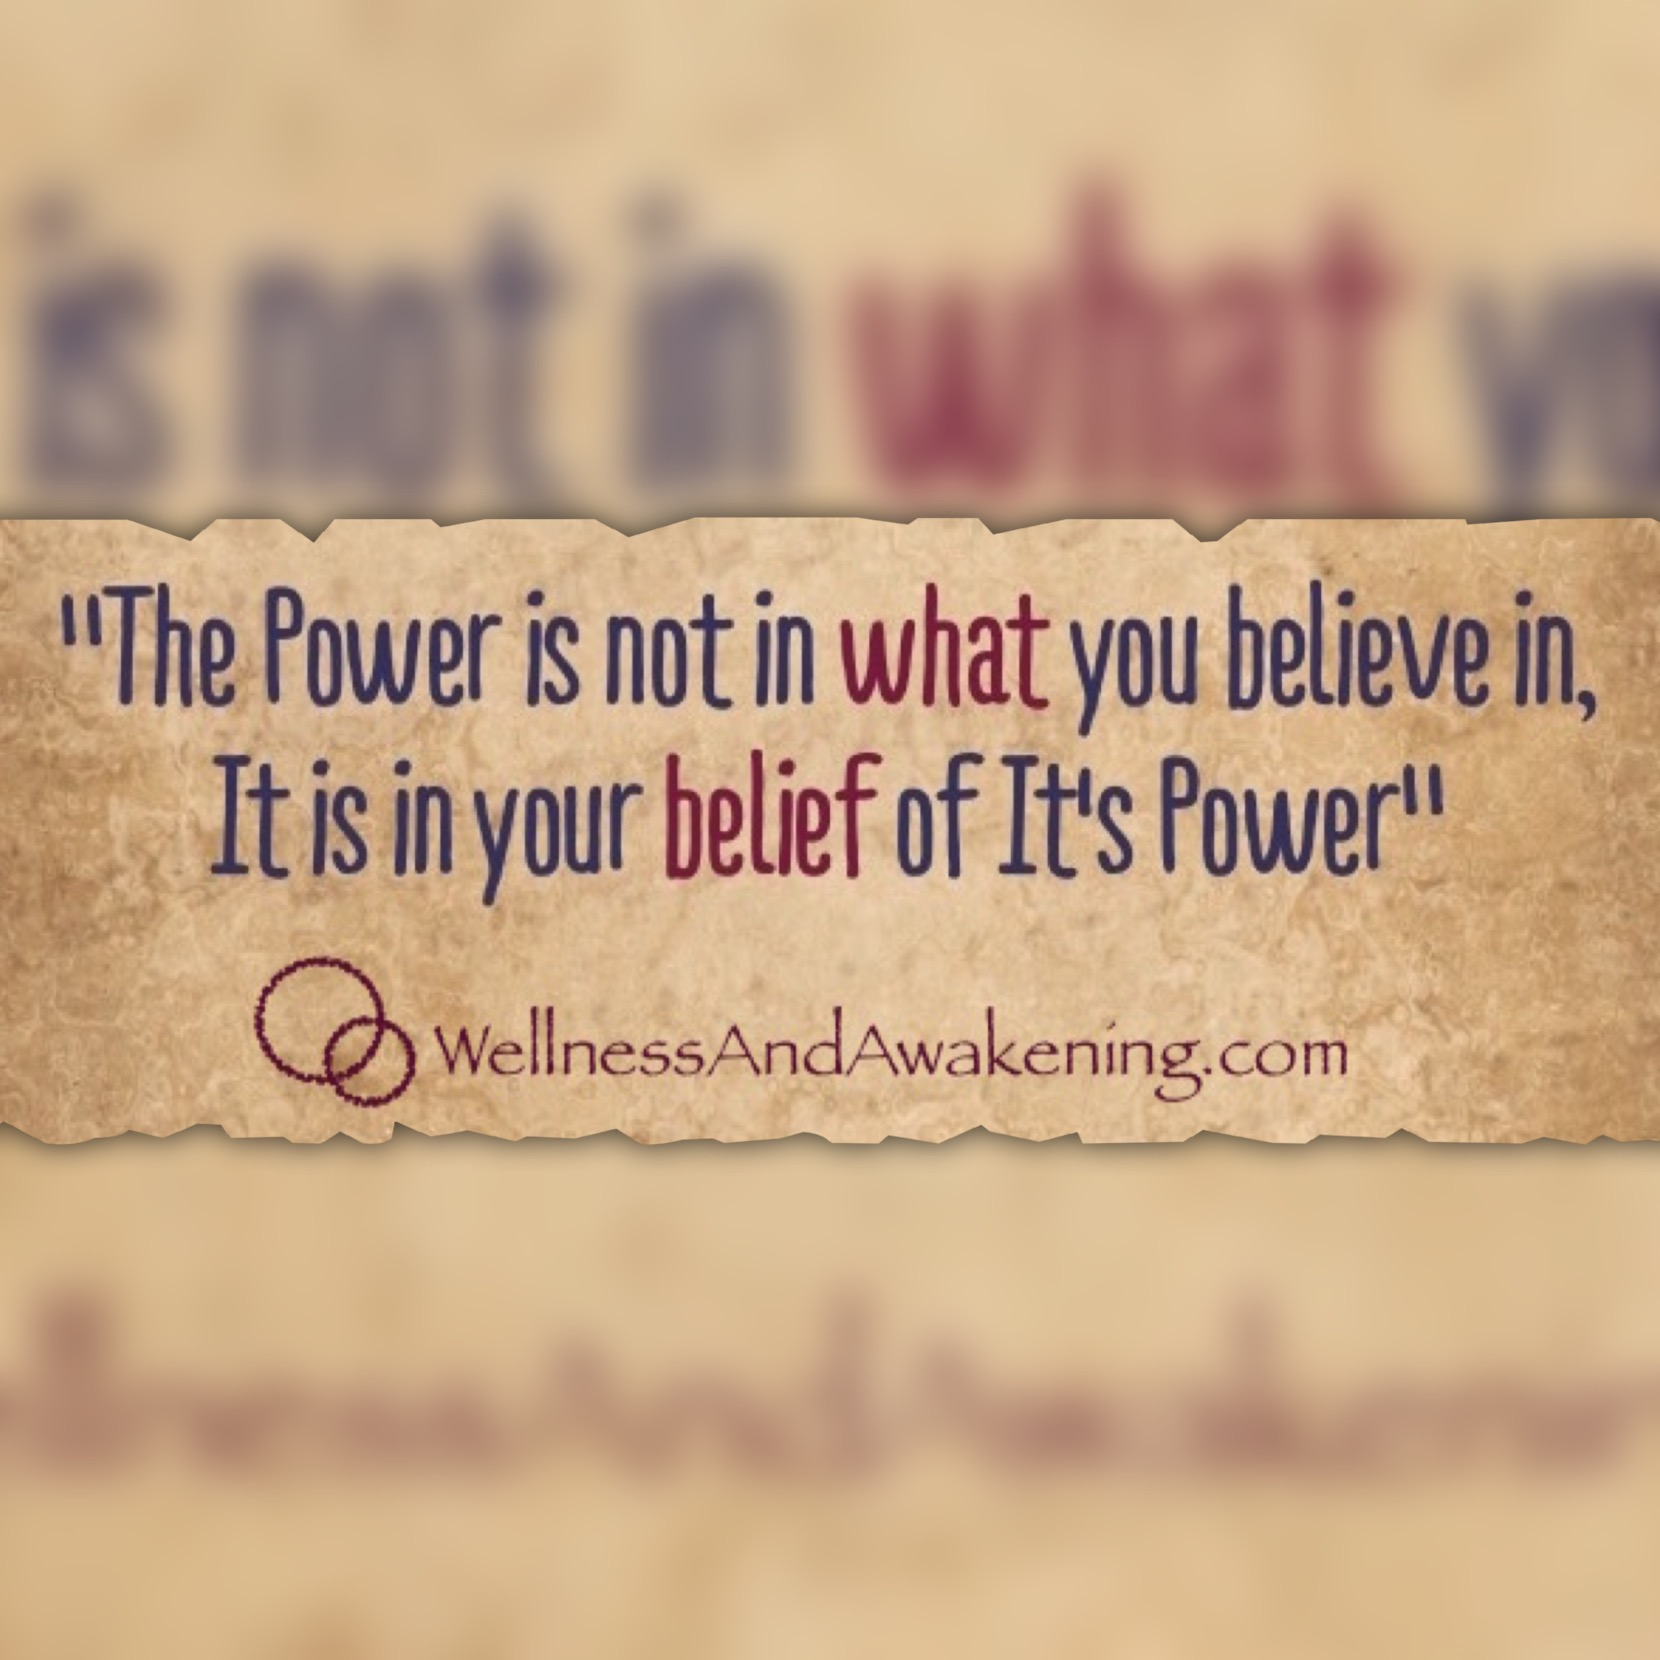 Belief in its power